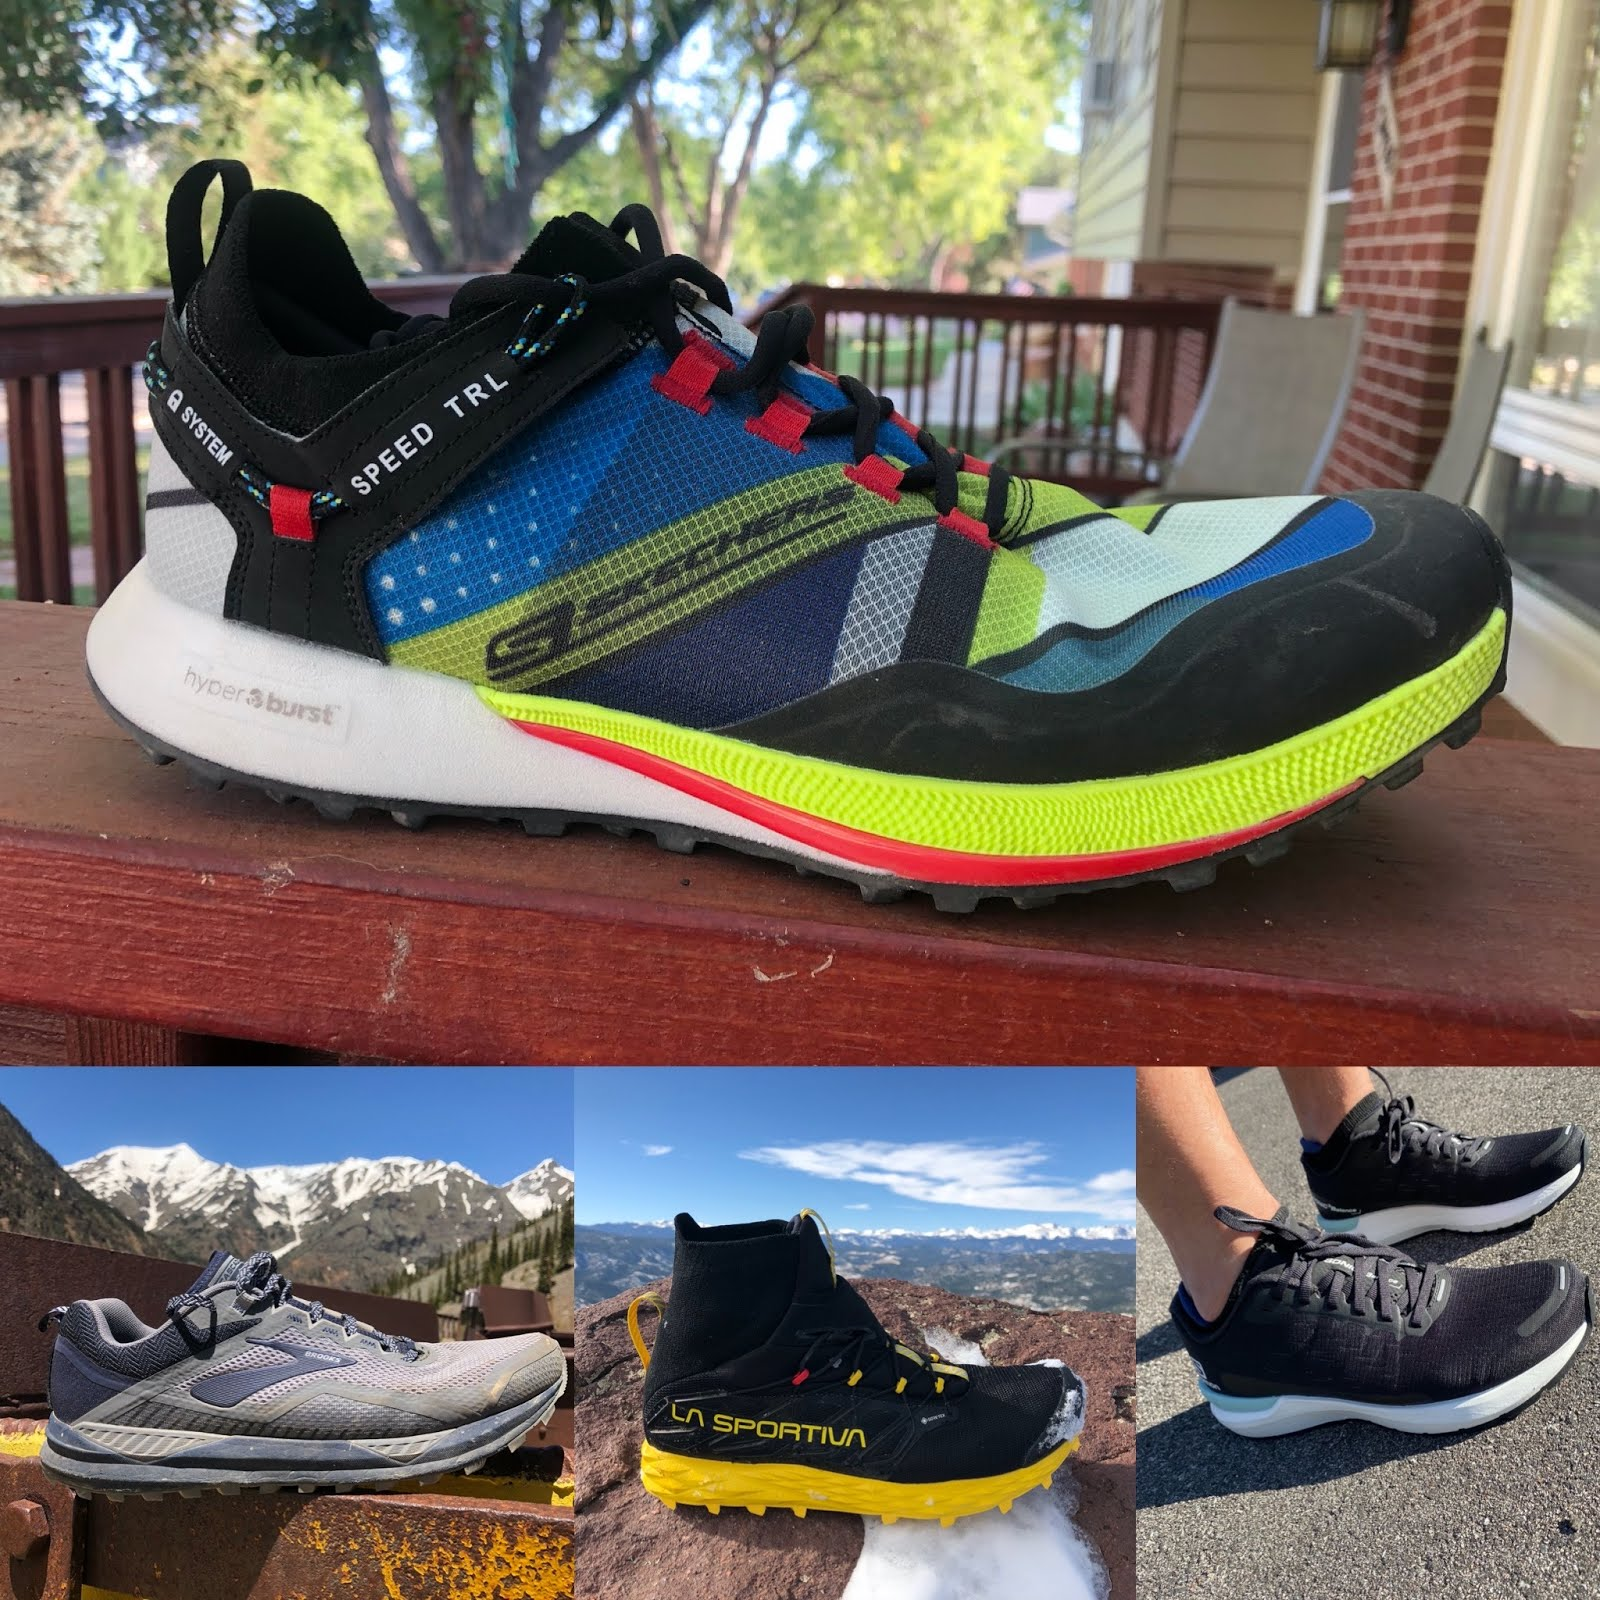 Road Trail Run: Jeff Valliere's 2019 Running Shoes and Gear